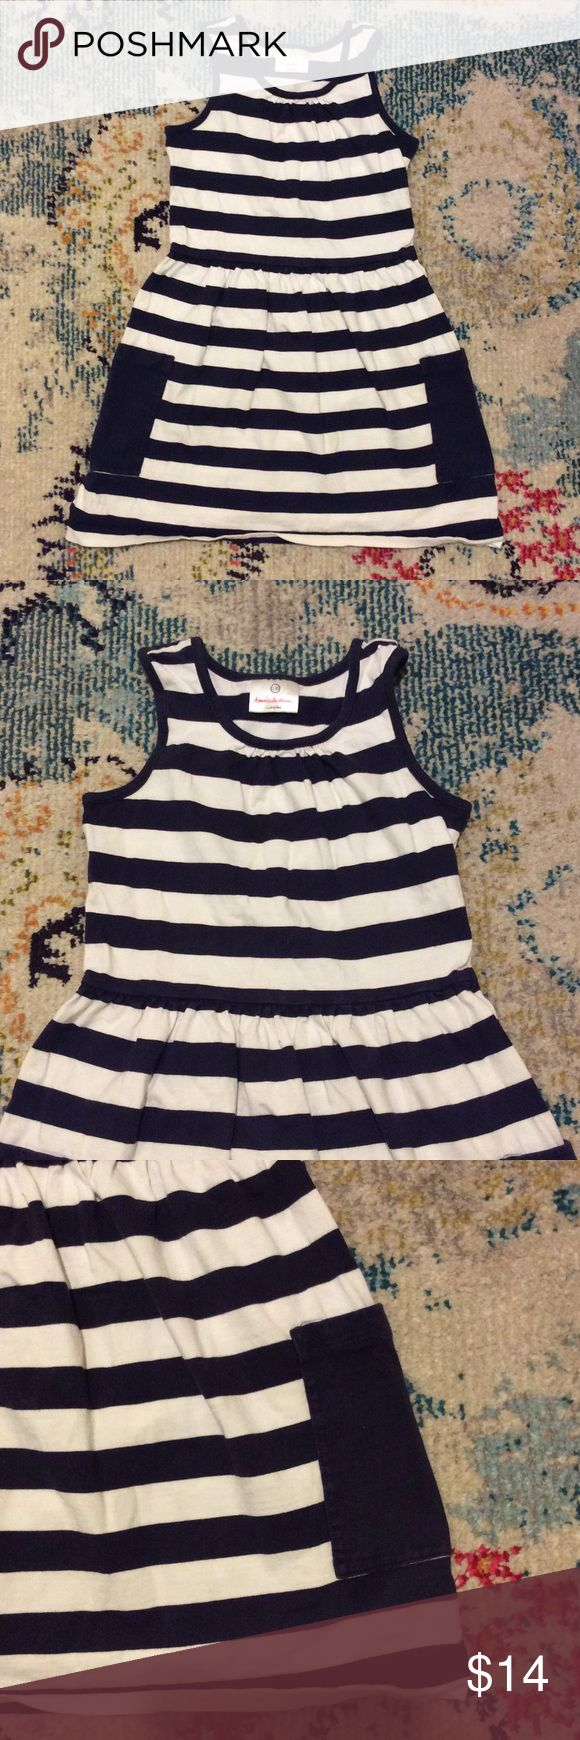 Hanna Andersson Navy Striped Jumper Dress Cute stretchy dress from Hanna Andersson, size 130. US size 8-10. Navy and white thick striped sleeveless jumper with navy side pockets. Pleated bodice and pleated skirt. 100% cotton. Hanna Andersson Dresses Casual